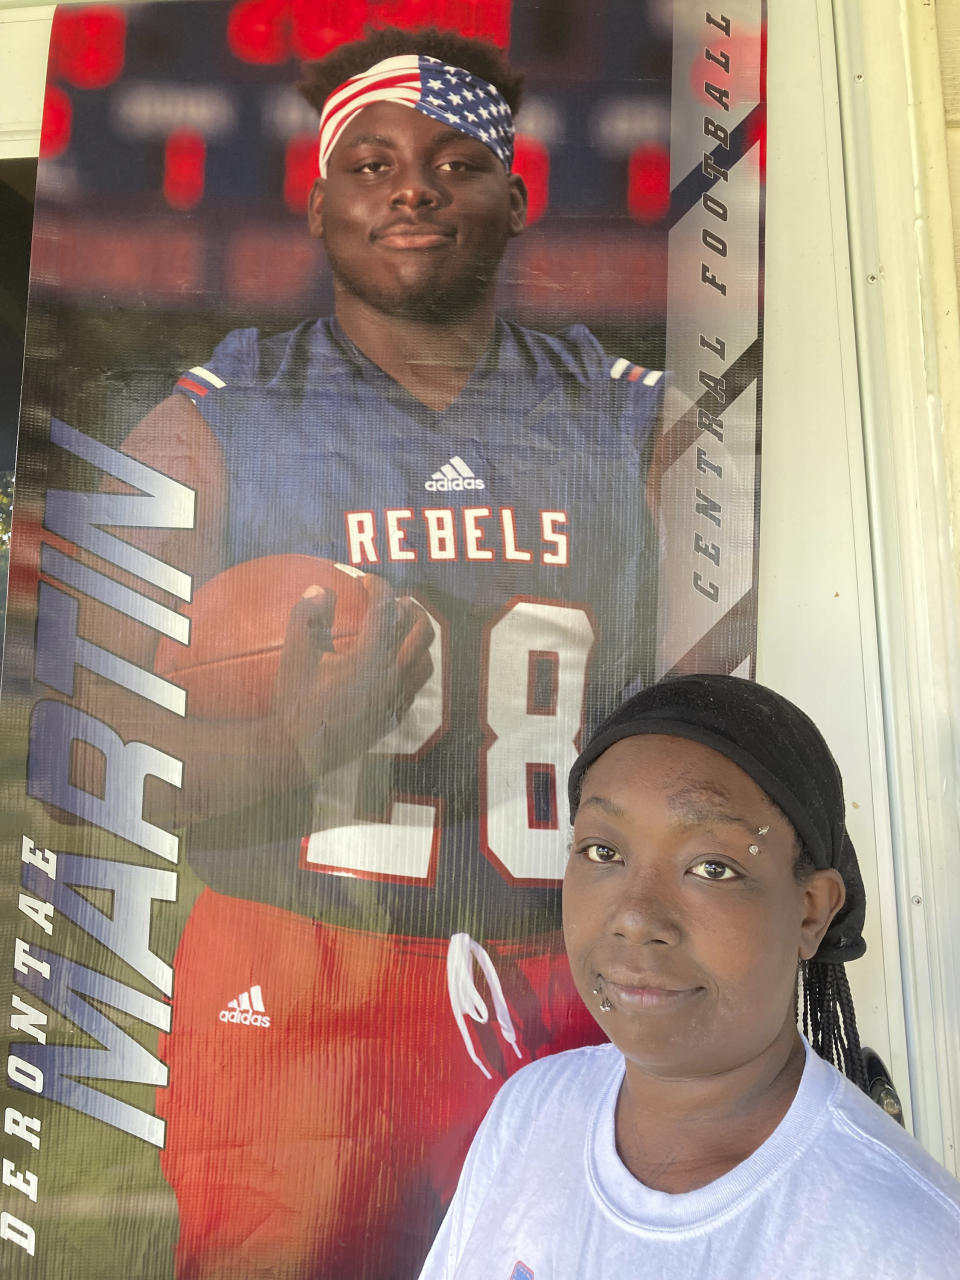 Ericka Lotts stands next to a poster of her son, Derontae Martin, from his high school football playing days, on Friday, Sept. 17, 2021, at her home in Ferguson, Mo. Lotts is frustrated by the pace of the investigation into Martin's death. The 19-year-old died in April at a home in rural Missouri. (AP Photo by Jim Salter)